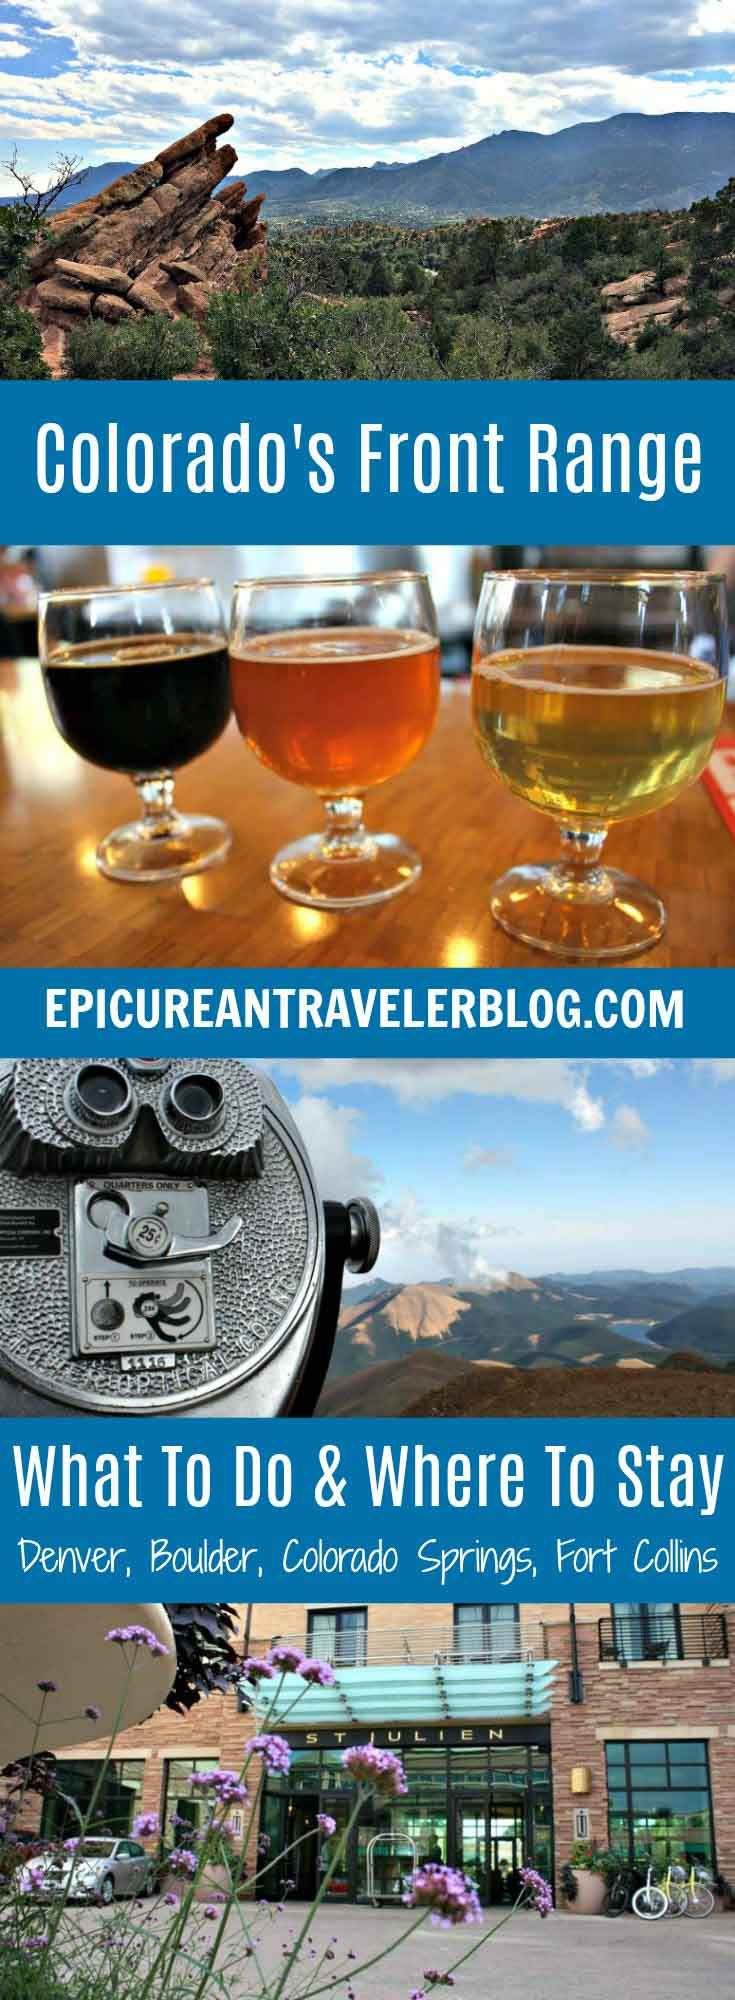 Visiting Colorado? Start your trip along the Front Range in Denver, Boulder, Colorado Springs, or Fort Collins. Each of these cities is great for foodies, beer lovers, and outdoor enthusiasts. Check out the post for tips about what to do, where to eat and drink, and where to stay! Get your Colorado travel tips today at EpicureanTravelerBlog.com!